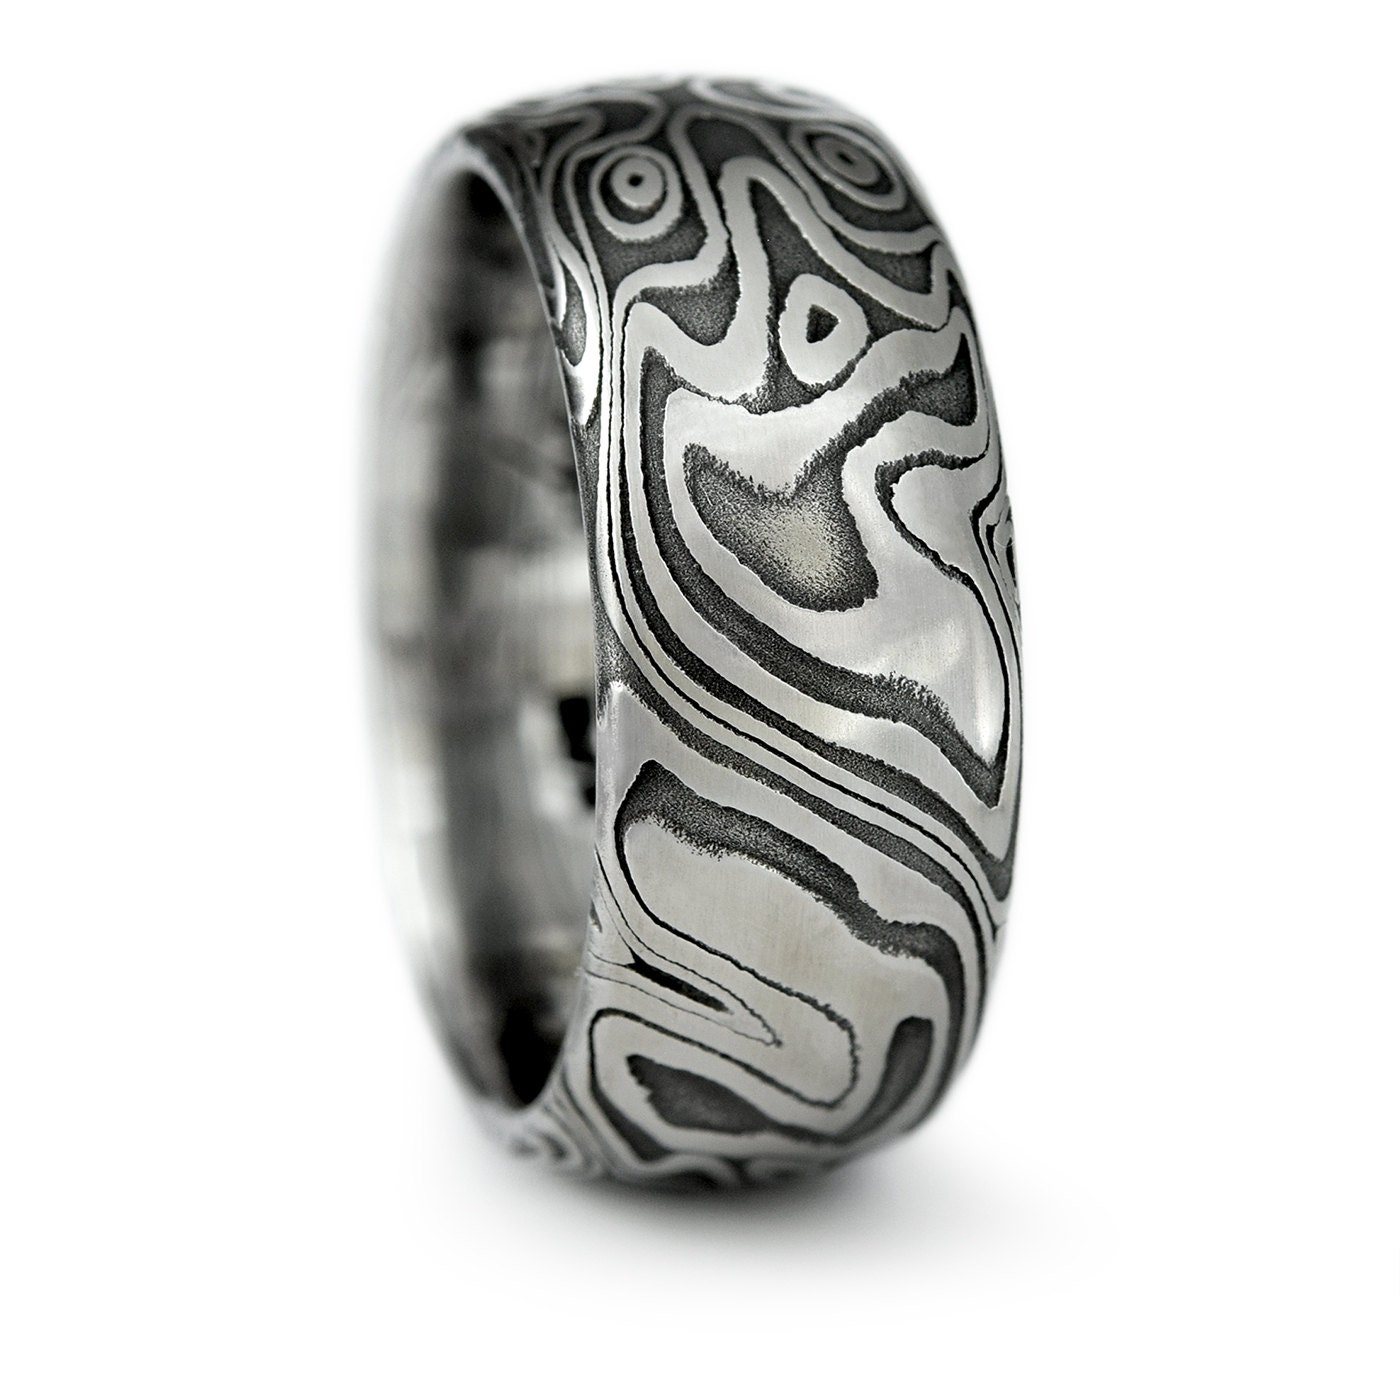 damascus steel ring with white gold damascus steel wedding bands Damascus Steel Domed Wedding Band with Four Pointed Swirling Star Pattern with Dark Fire Patina Bold Masculine Handmade Wedding Ring